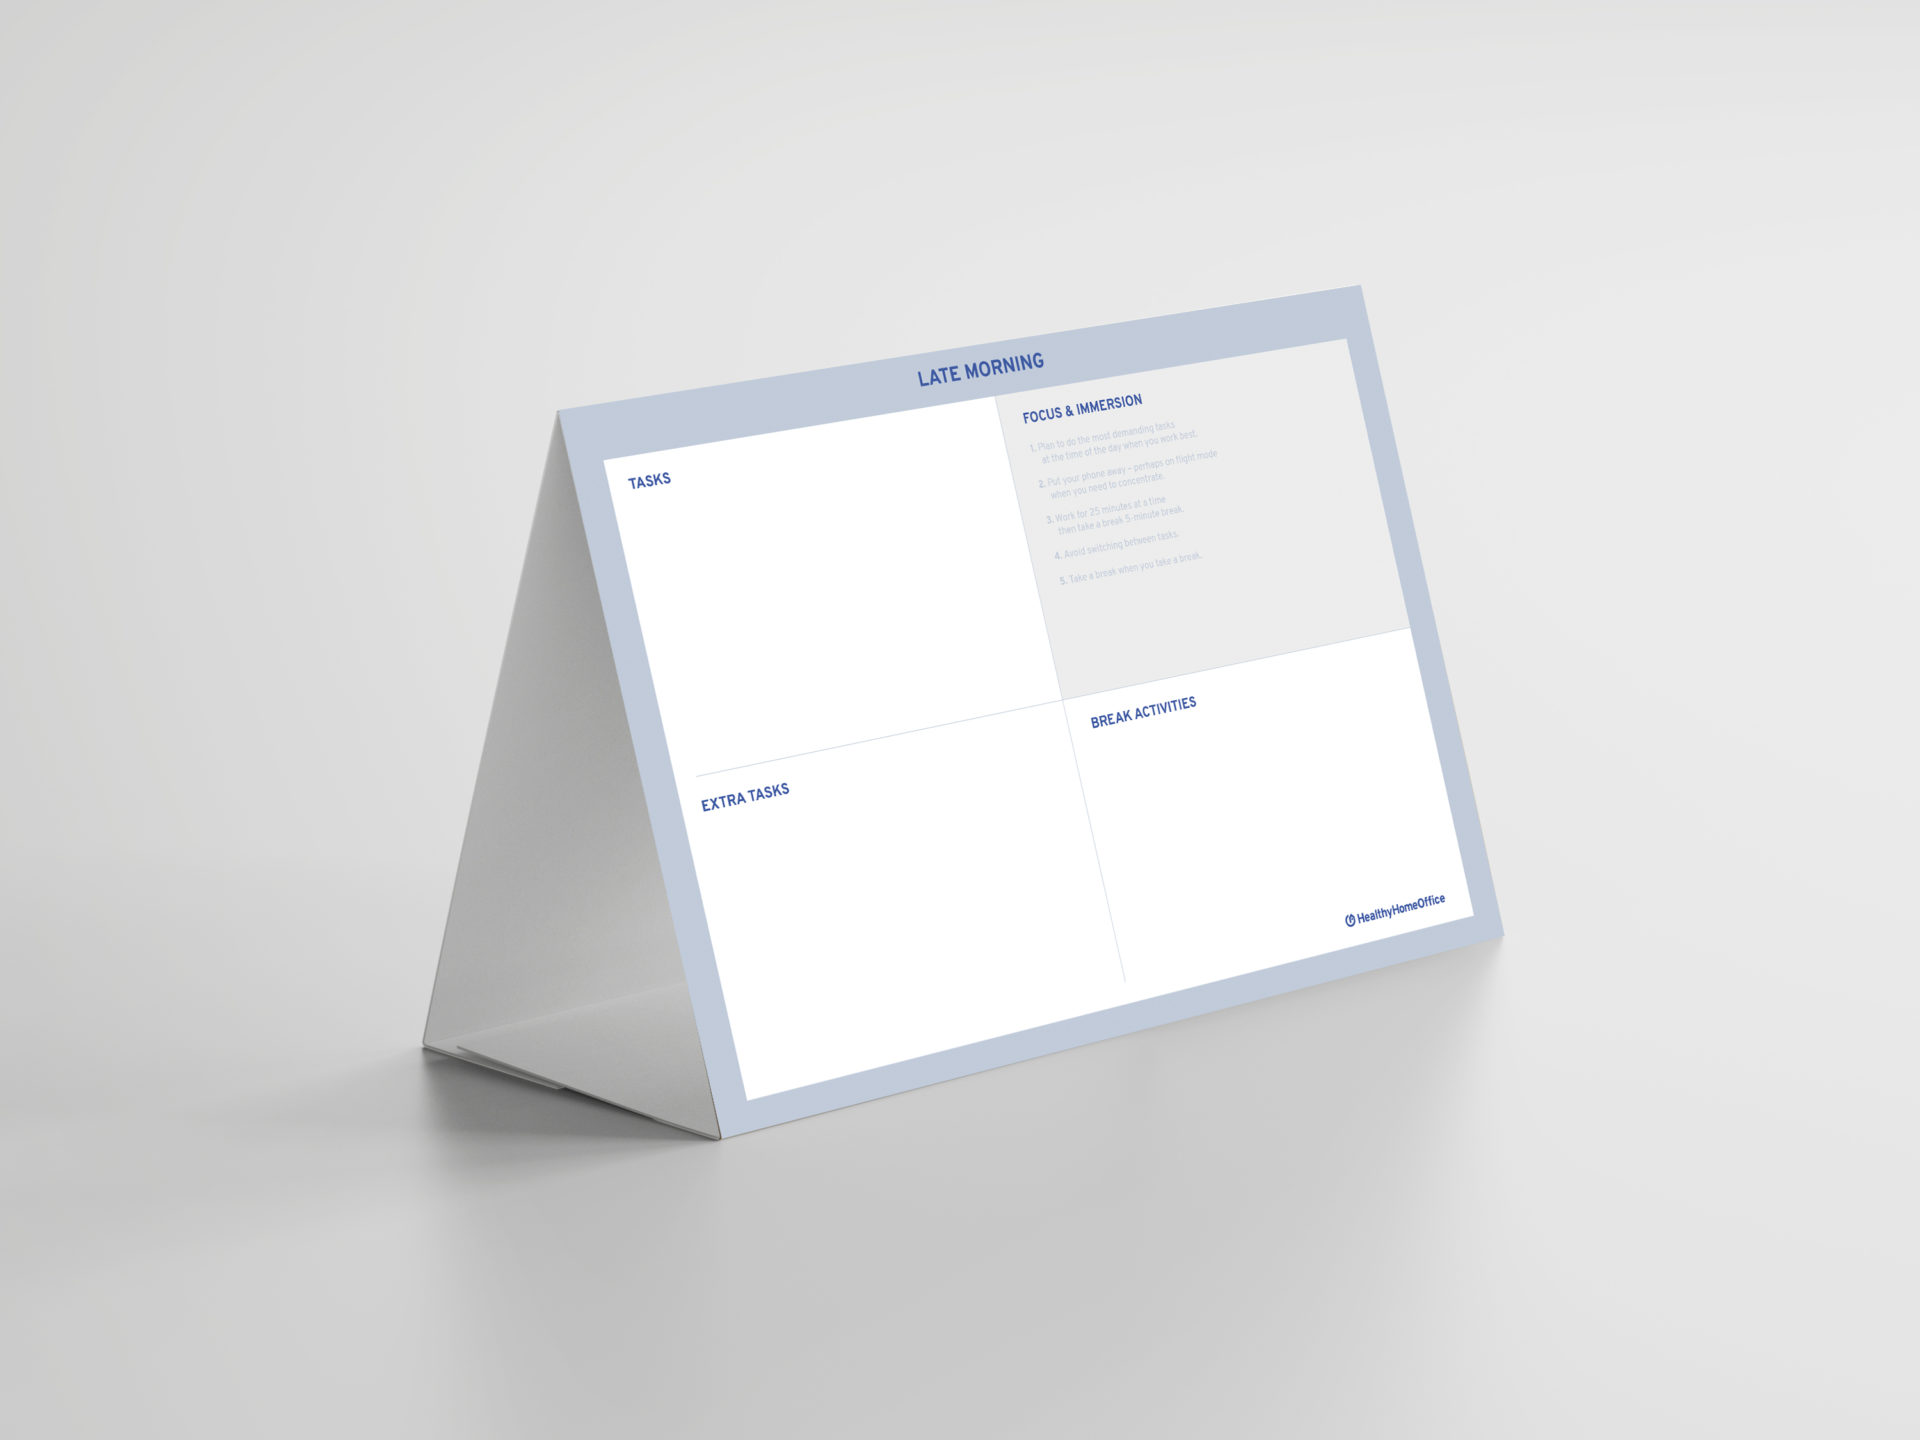 Focus box for remote working